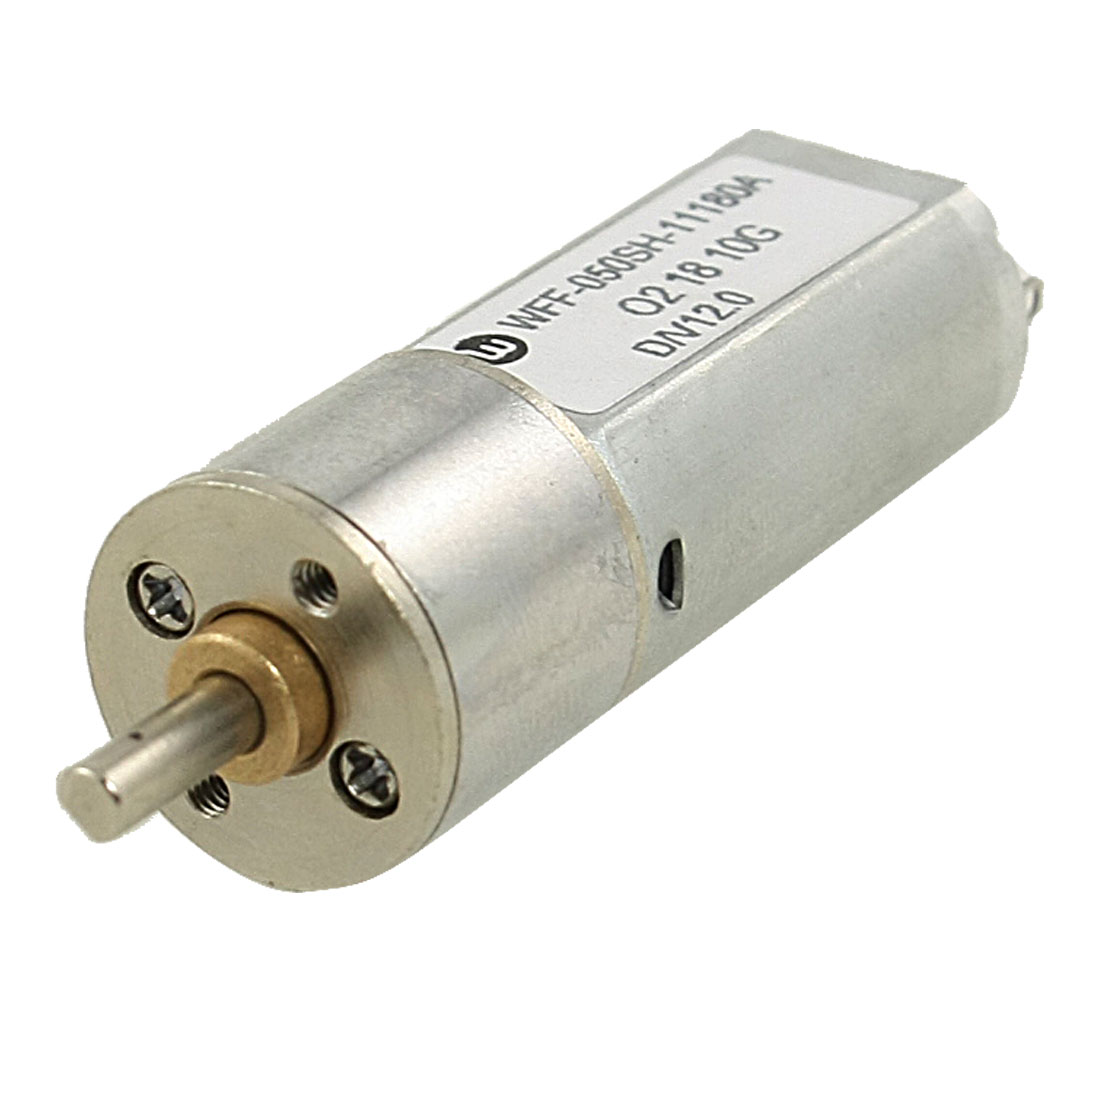 3mm-Shaft-300RPM-12V-0-6A-DC-Geared-Gear-Box-Motor-16mm